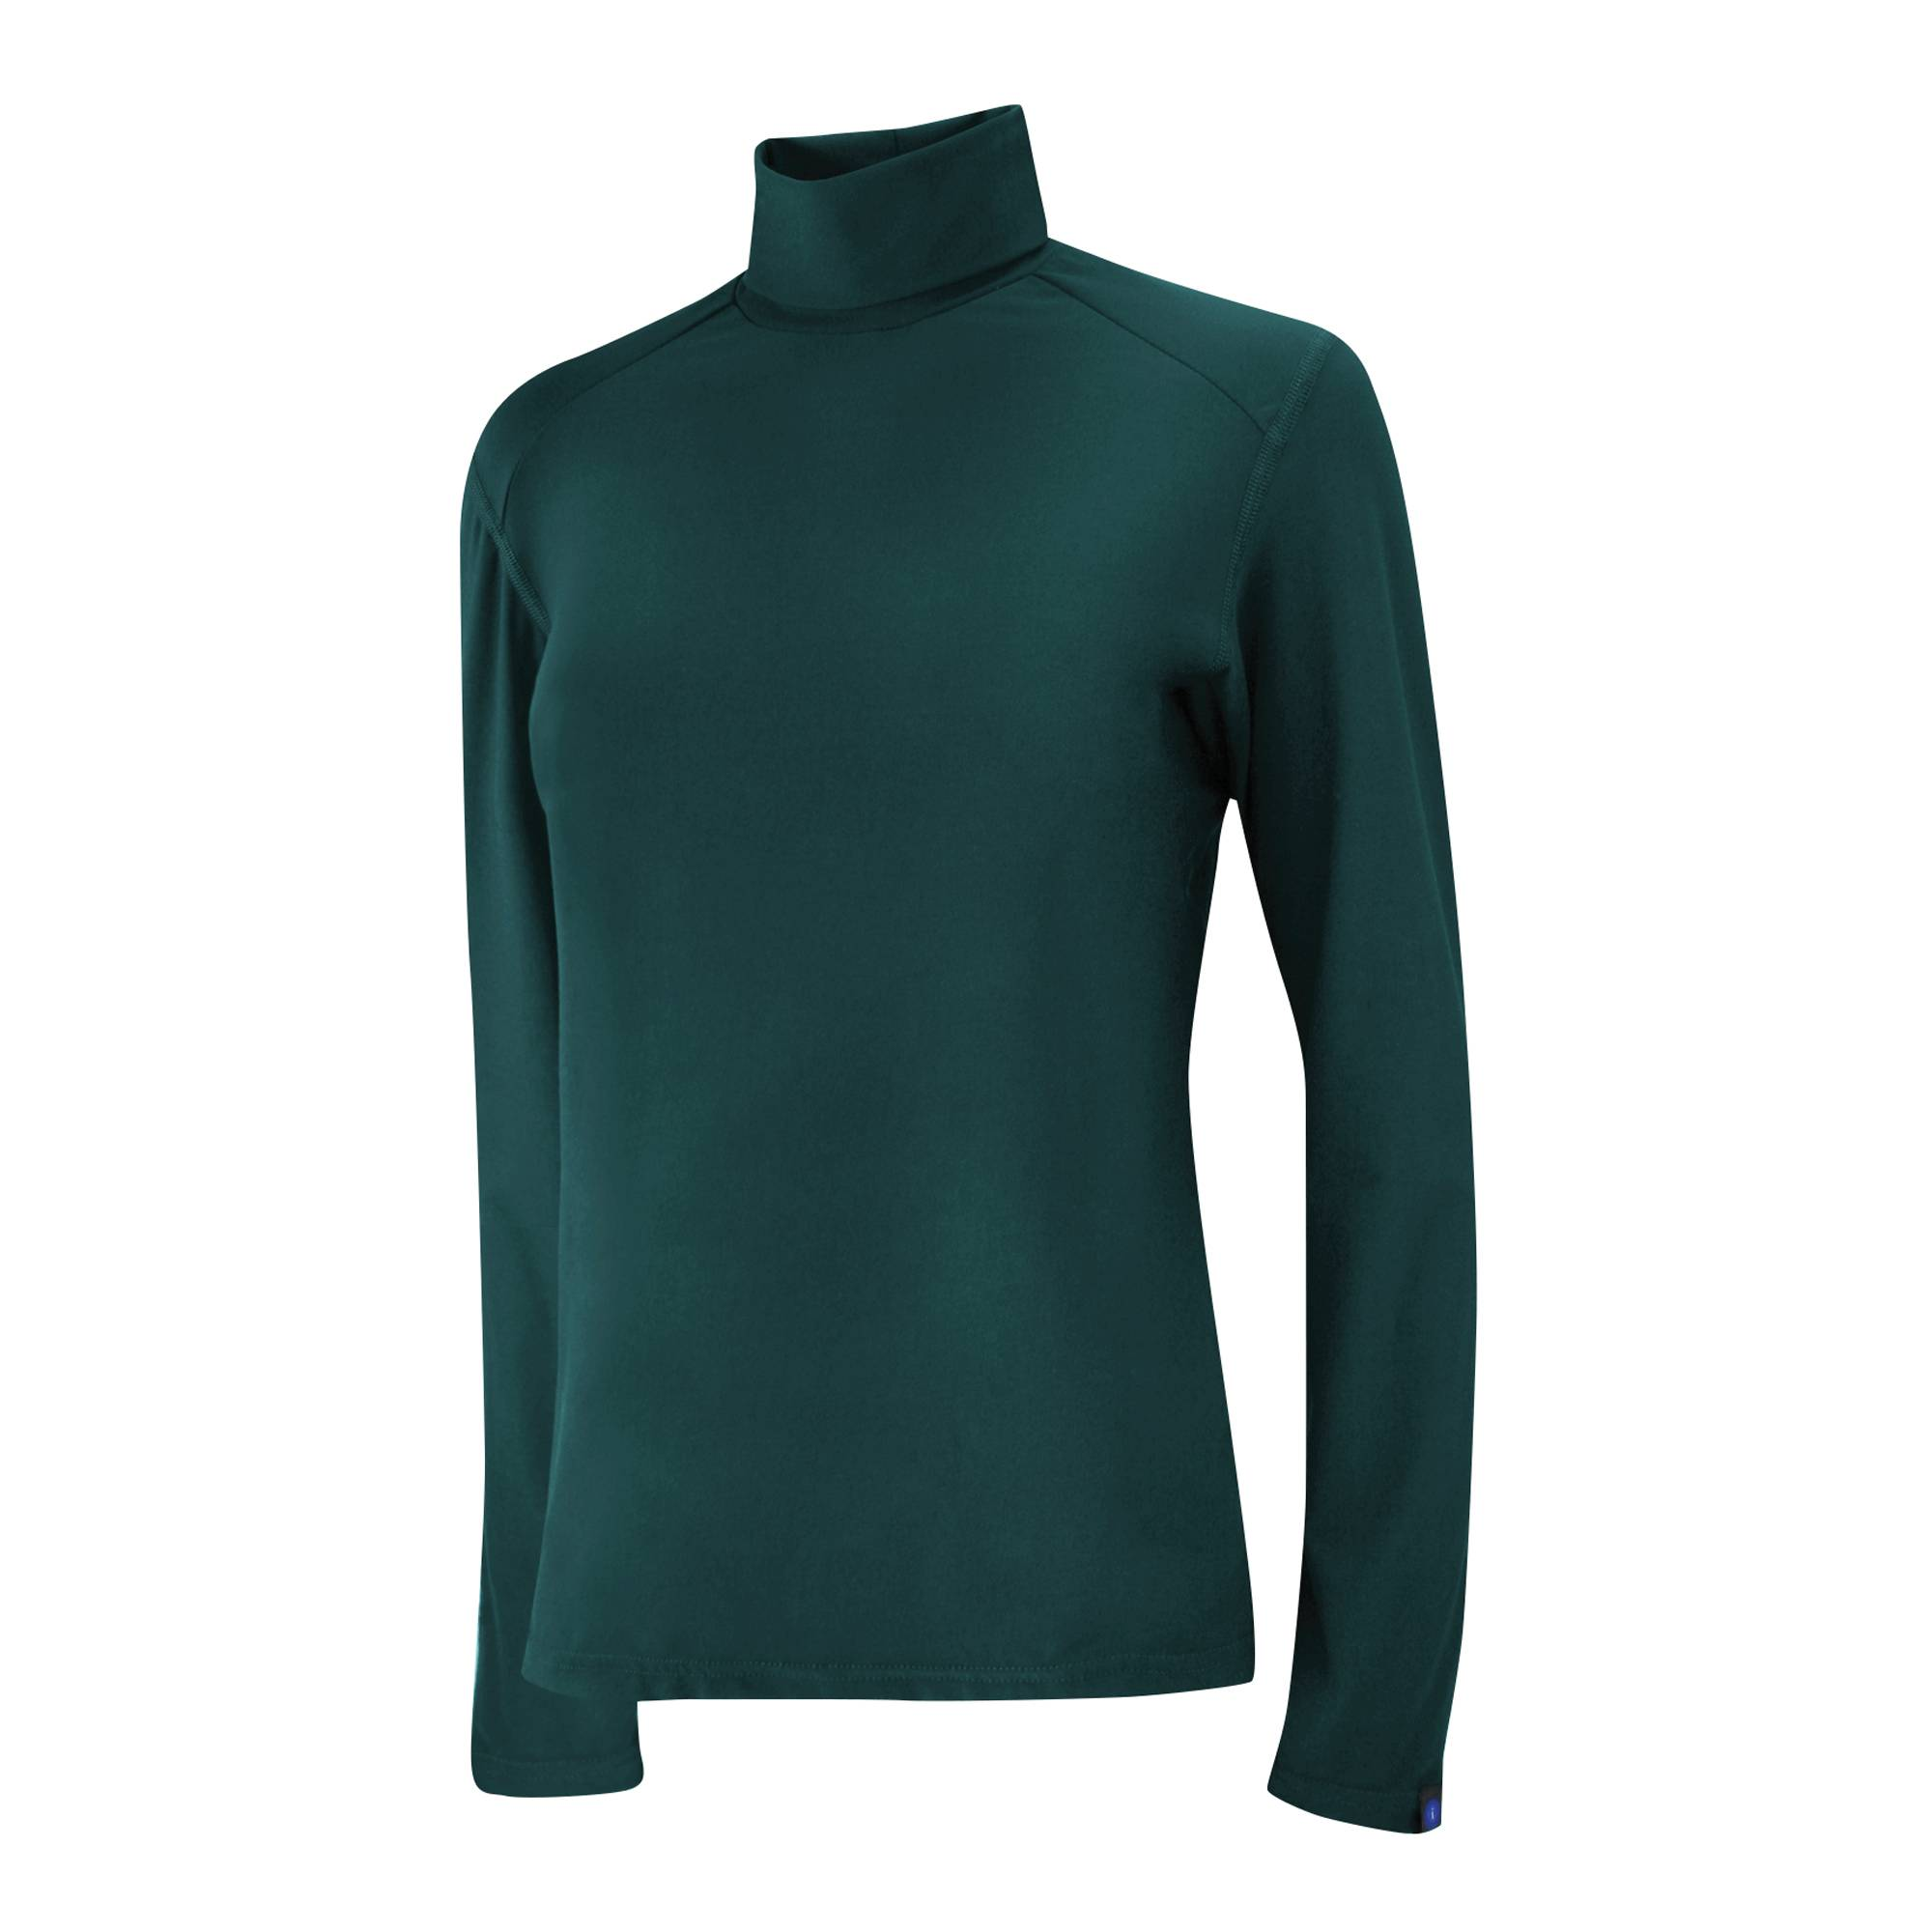 Irideon Ladies' Thermaluxe Turtleneck